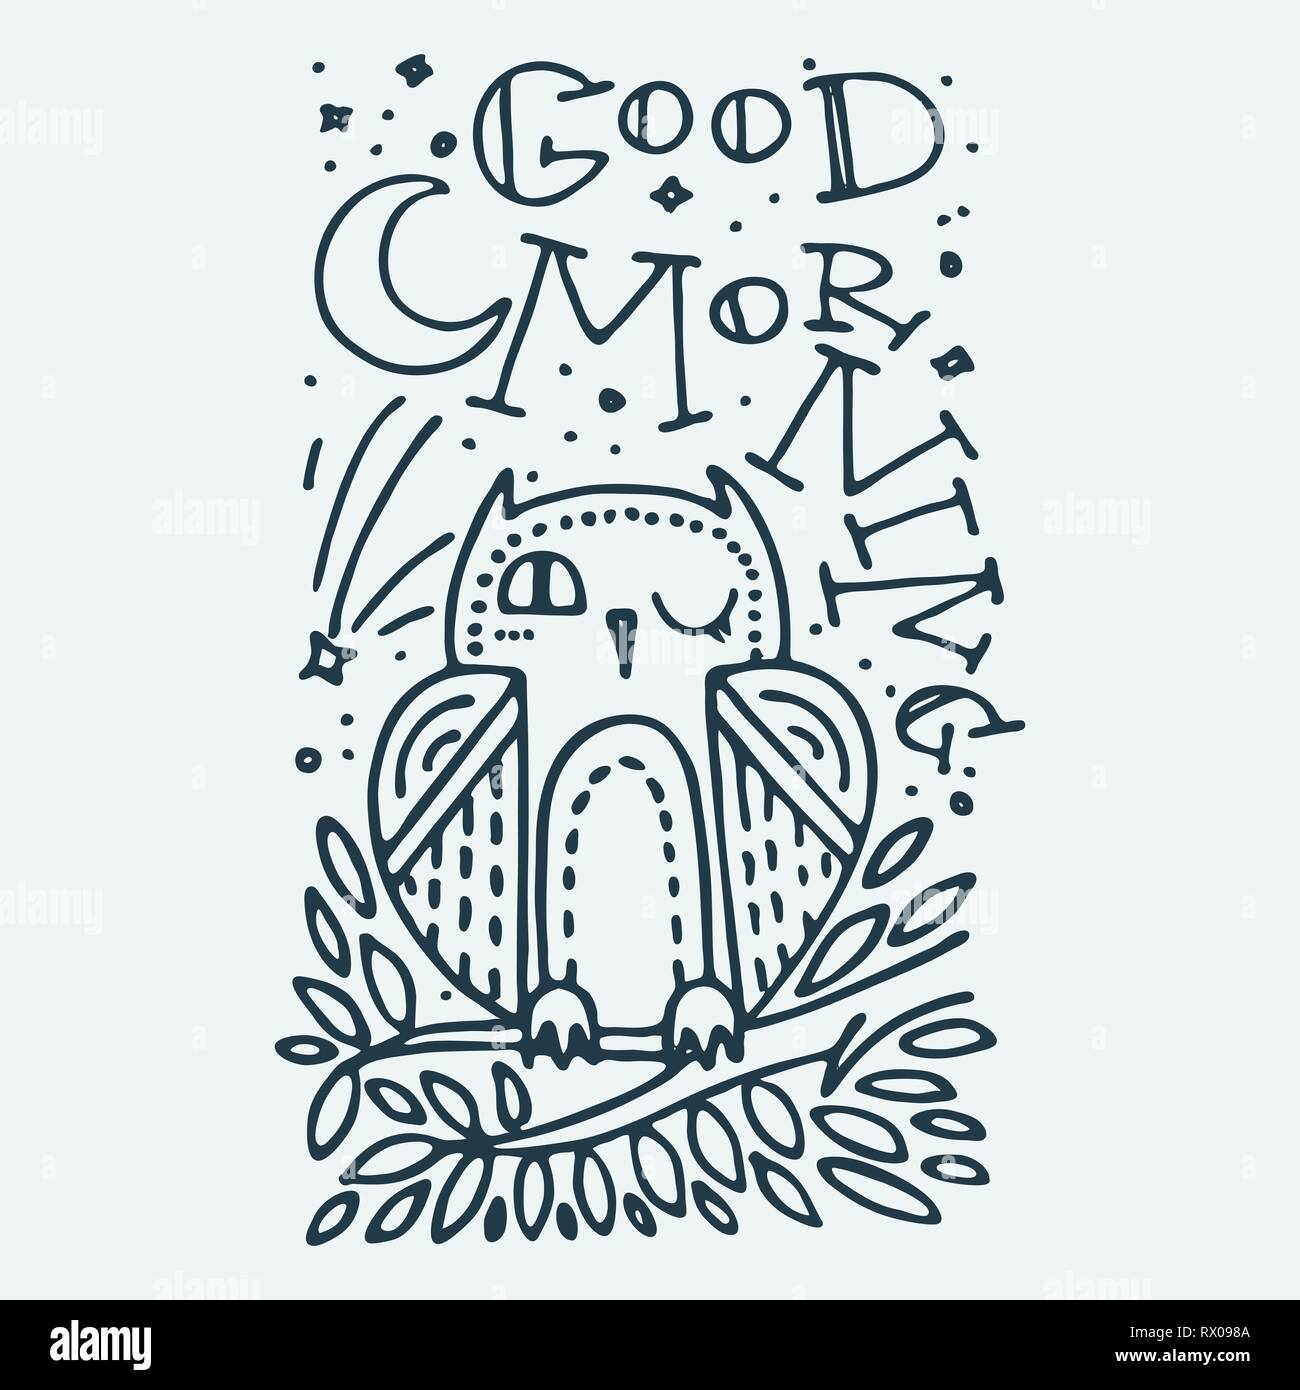 Good Morning Cute Little Animal With Lettering Cartoon Hand Drawn